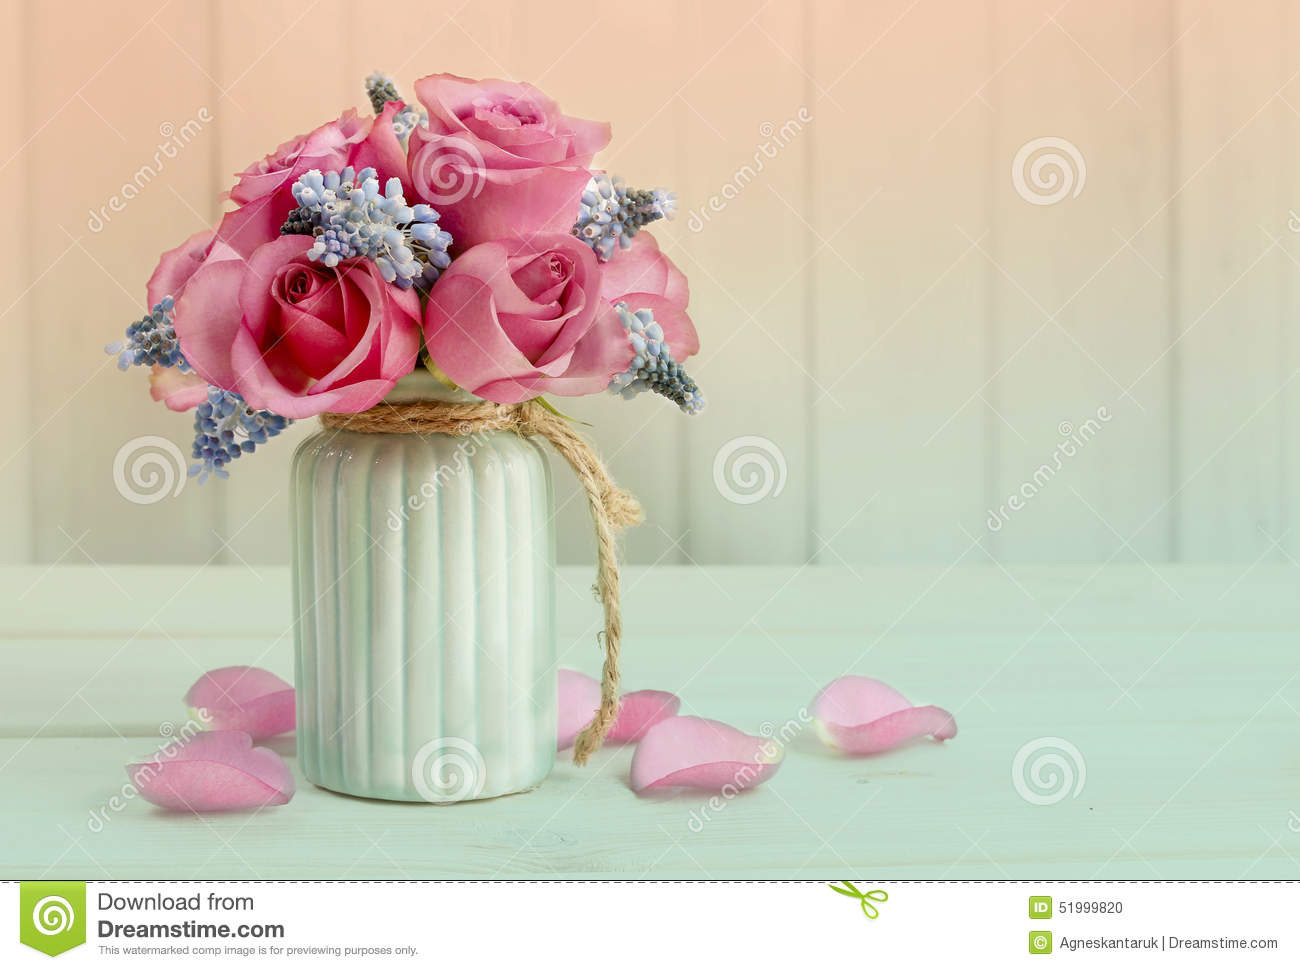 faux pink flowers in vase of bouquet of pink roses and blue muscari flower grape hyacinth stock with bouquet of pink roses and blue muscari flower grape hyacinth